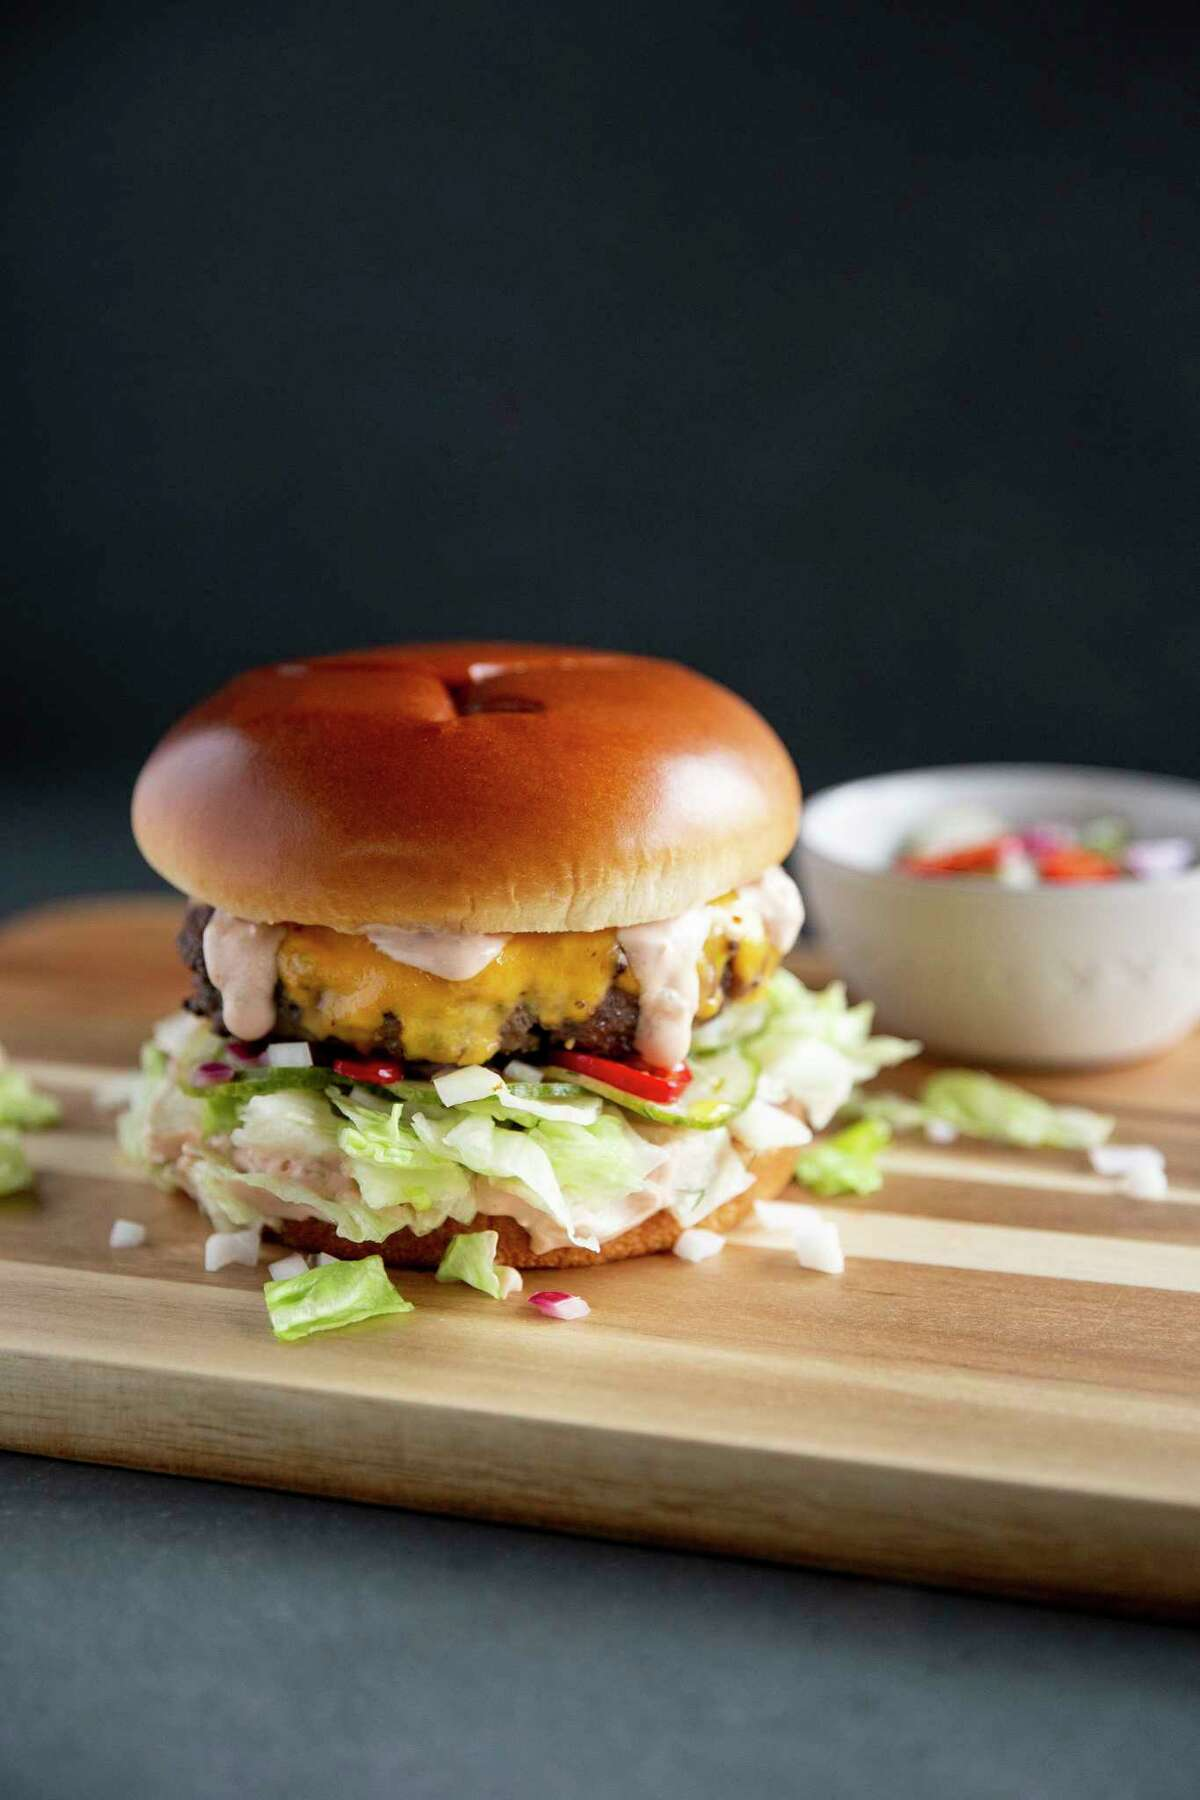 BigSmac Cheeseburgerfrom Rachael Ray's collaboration with Uber Eats.